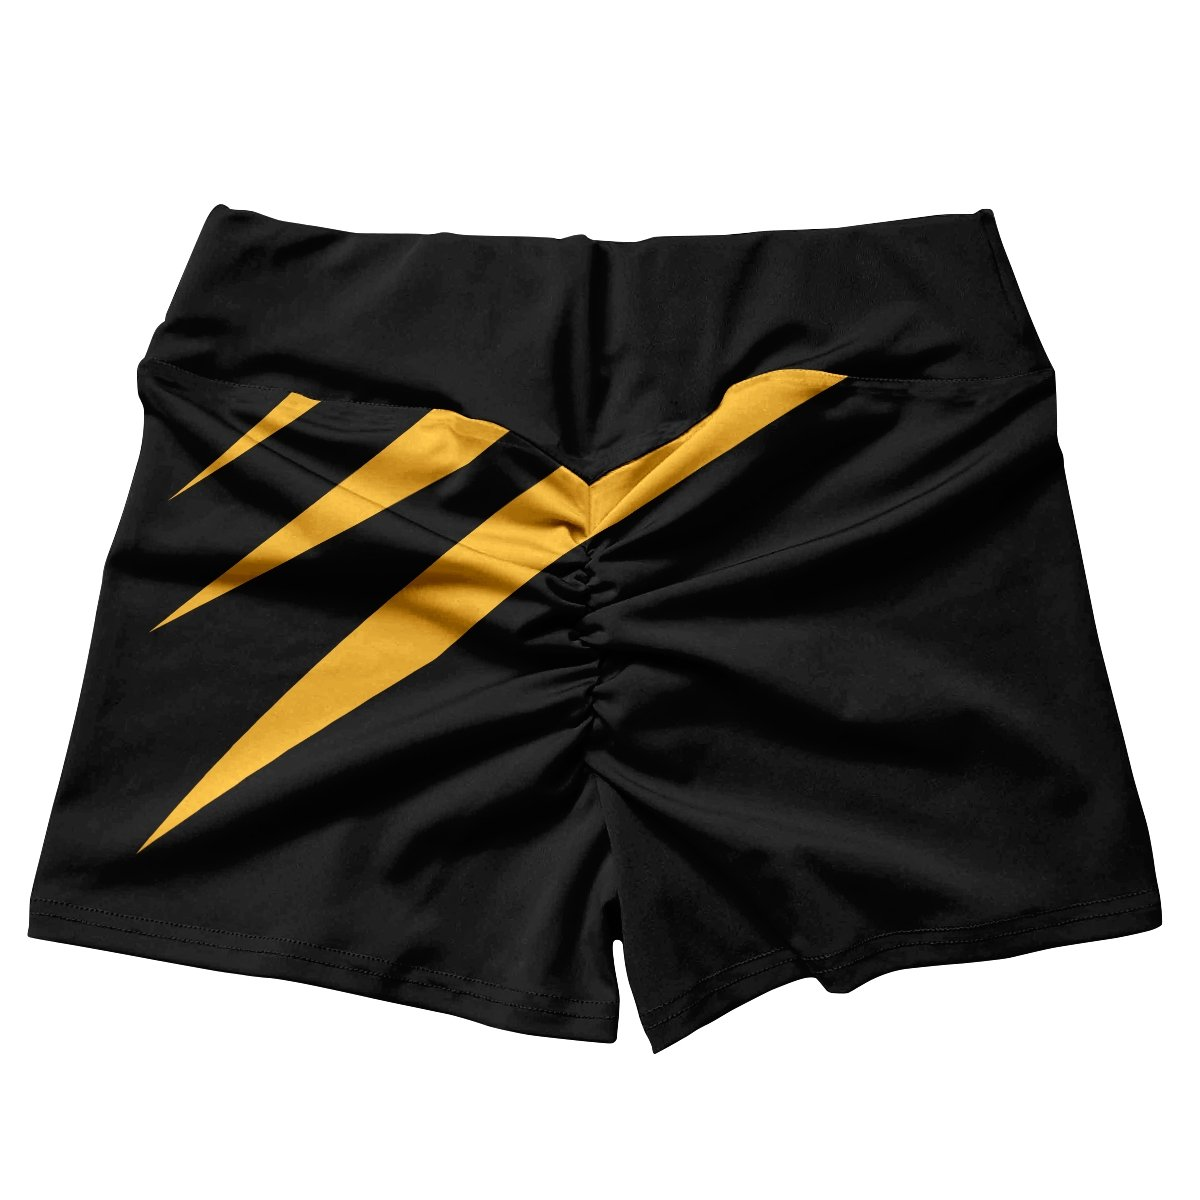 team msby black jackals active wear set 286812 - Anime Swimsuits